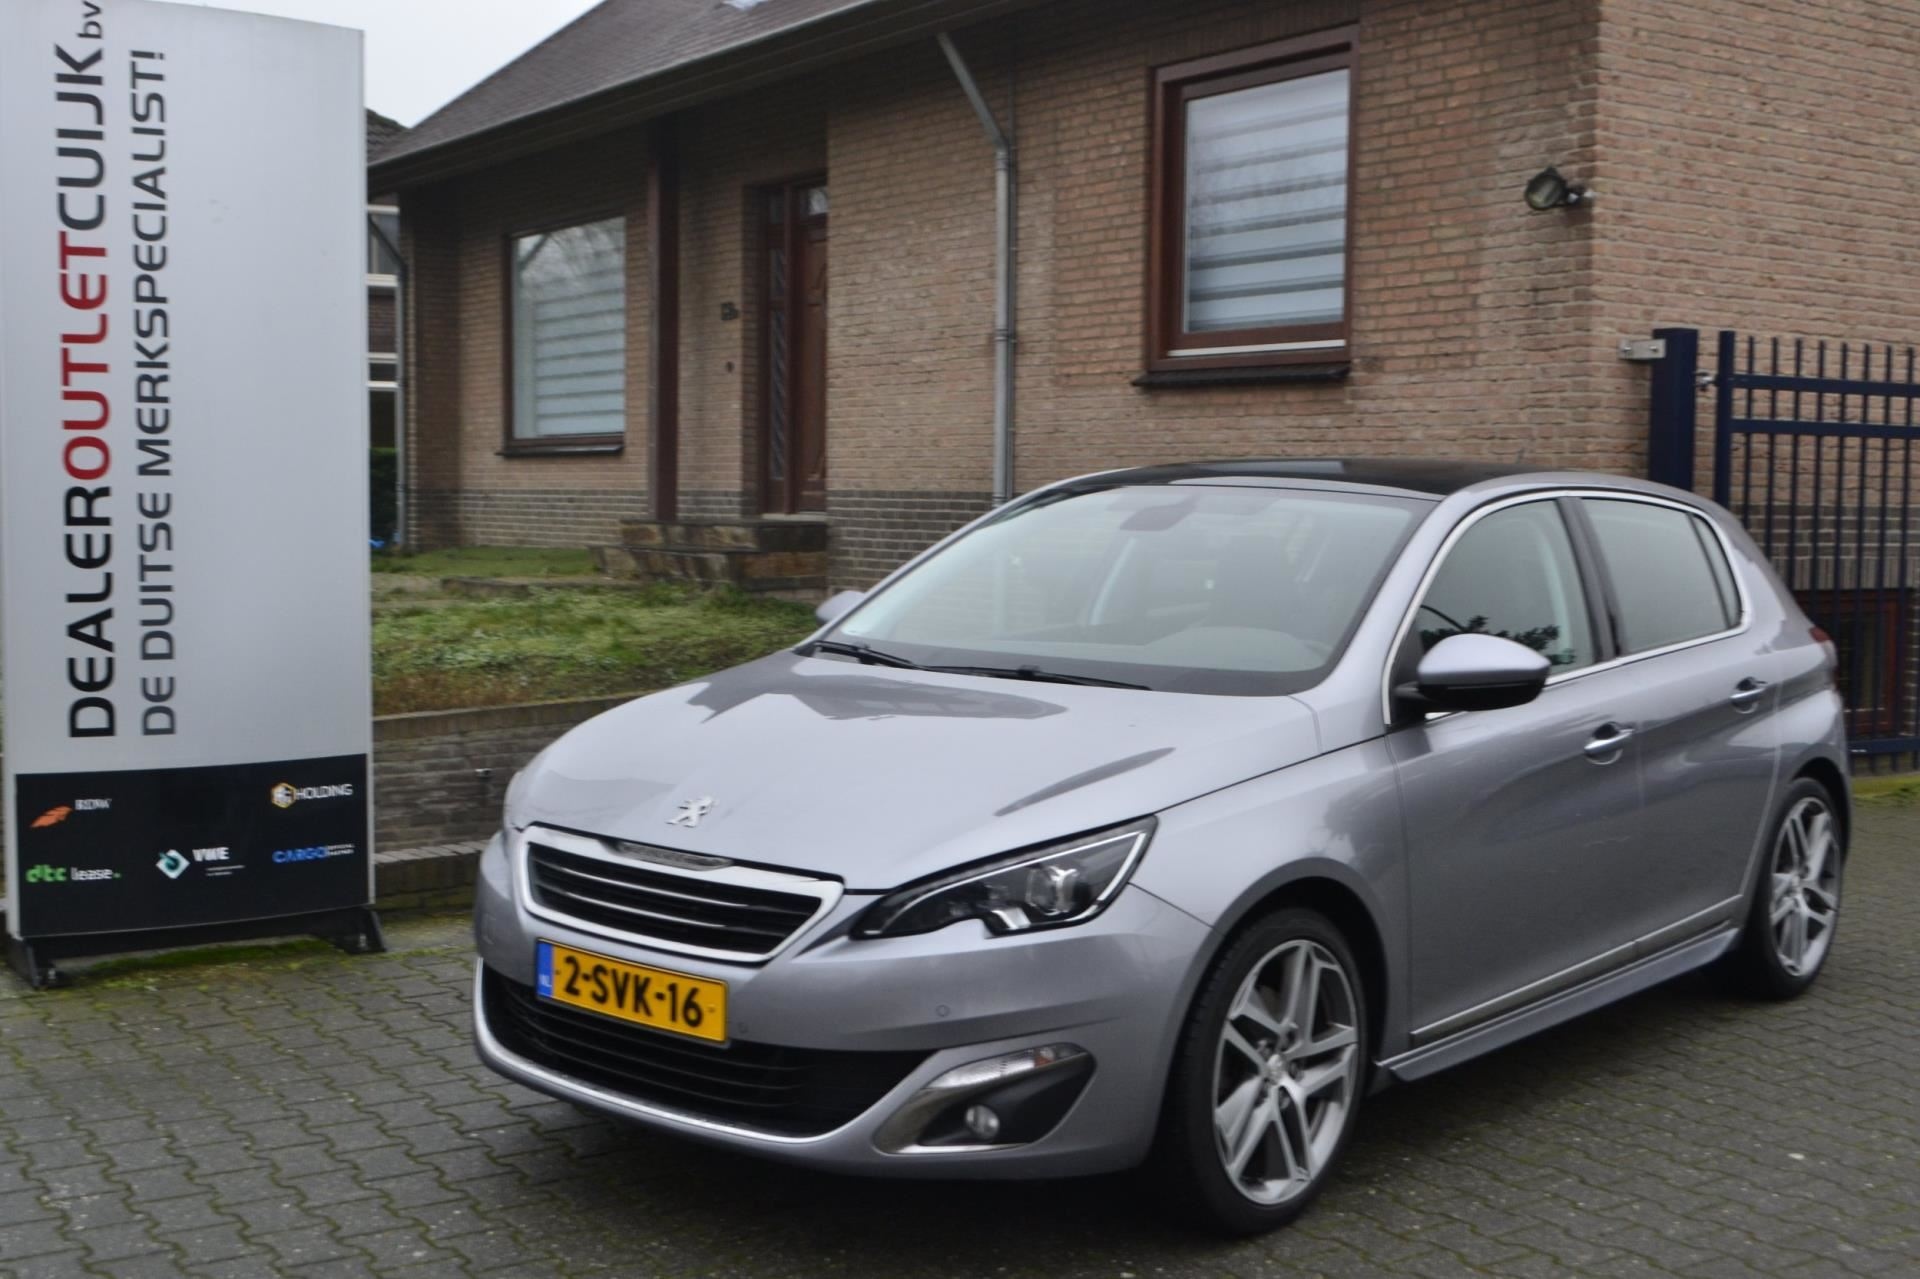 Peugeot 308 occasion - Dealer Outlet Cuijk b.v.